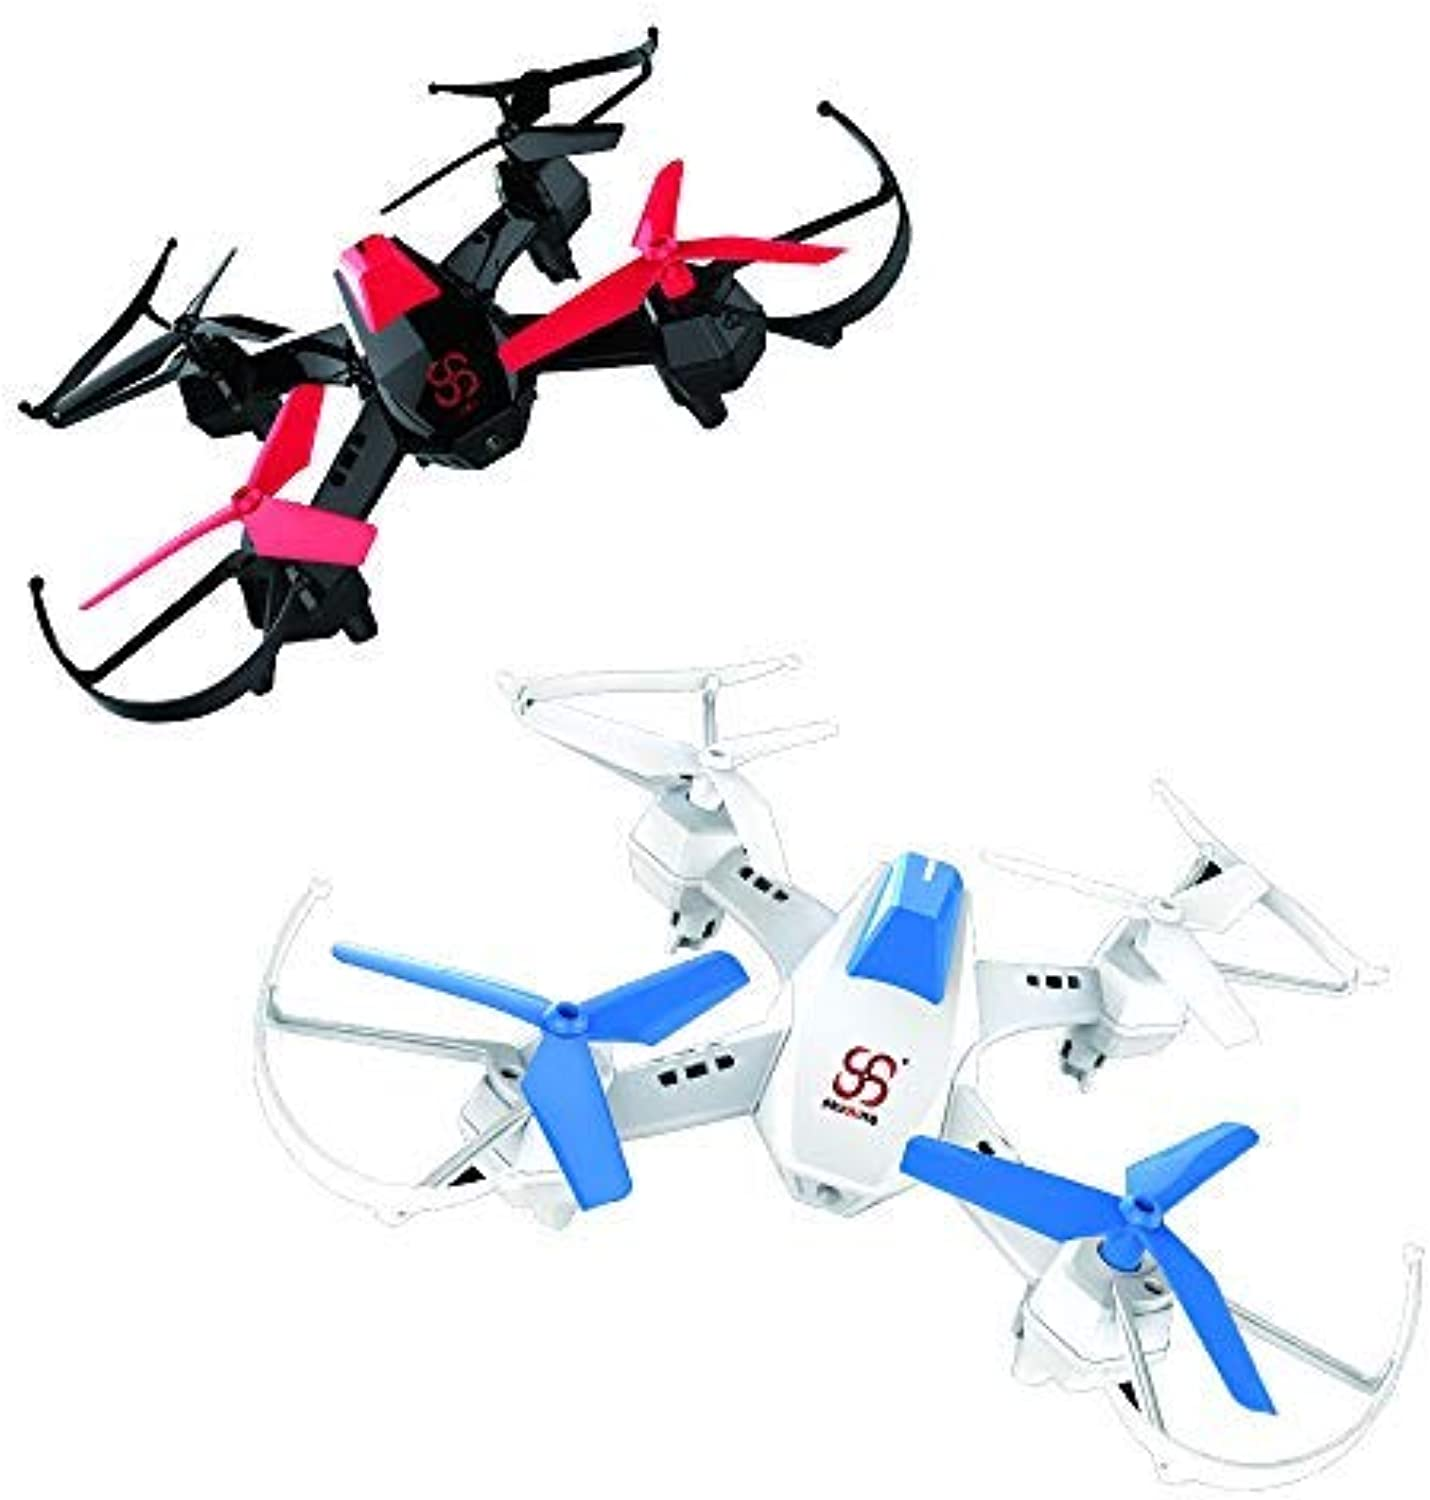 Battle Drones Fighting Drone with Infrared SKYKING S55X with 3D Flips and Battle Mode for Kids,2.4Ghz 4 Channel 6 Axis Gyro,color White and Black,Quantity 2 for 1 Set